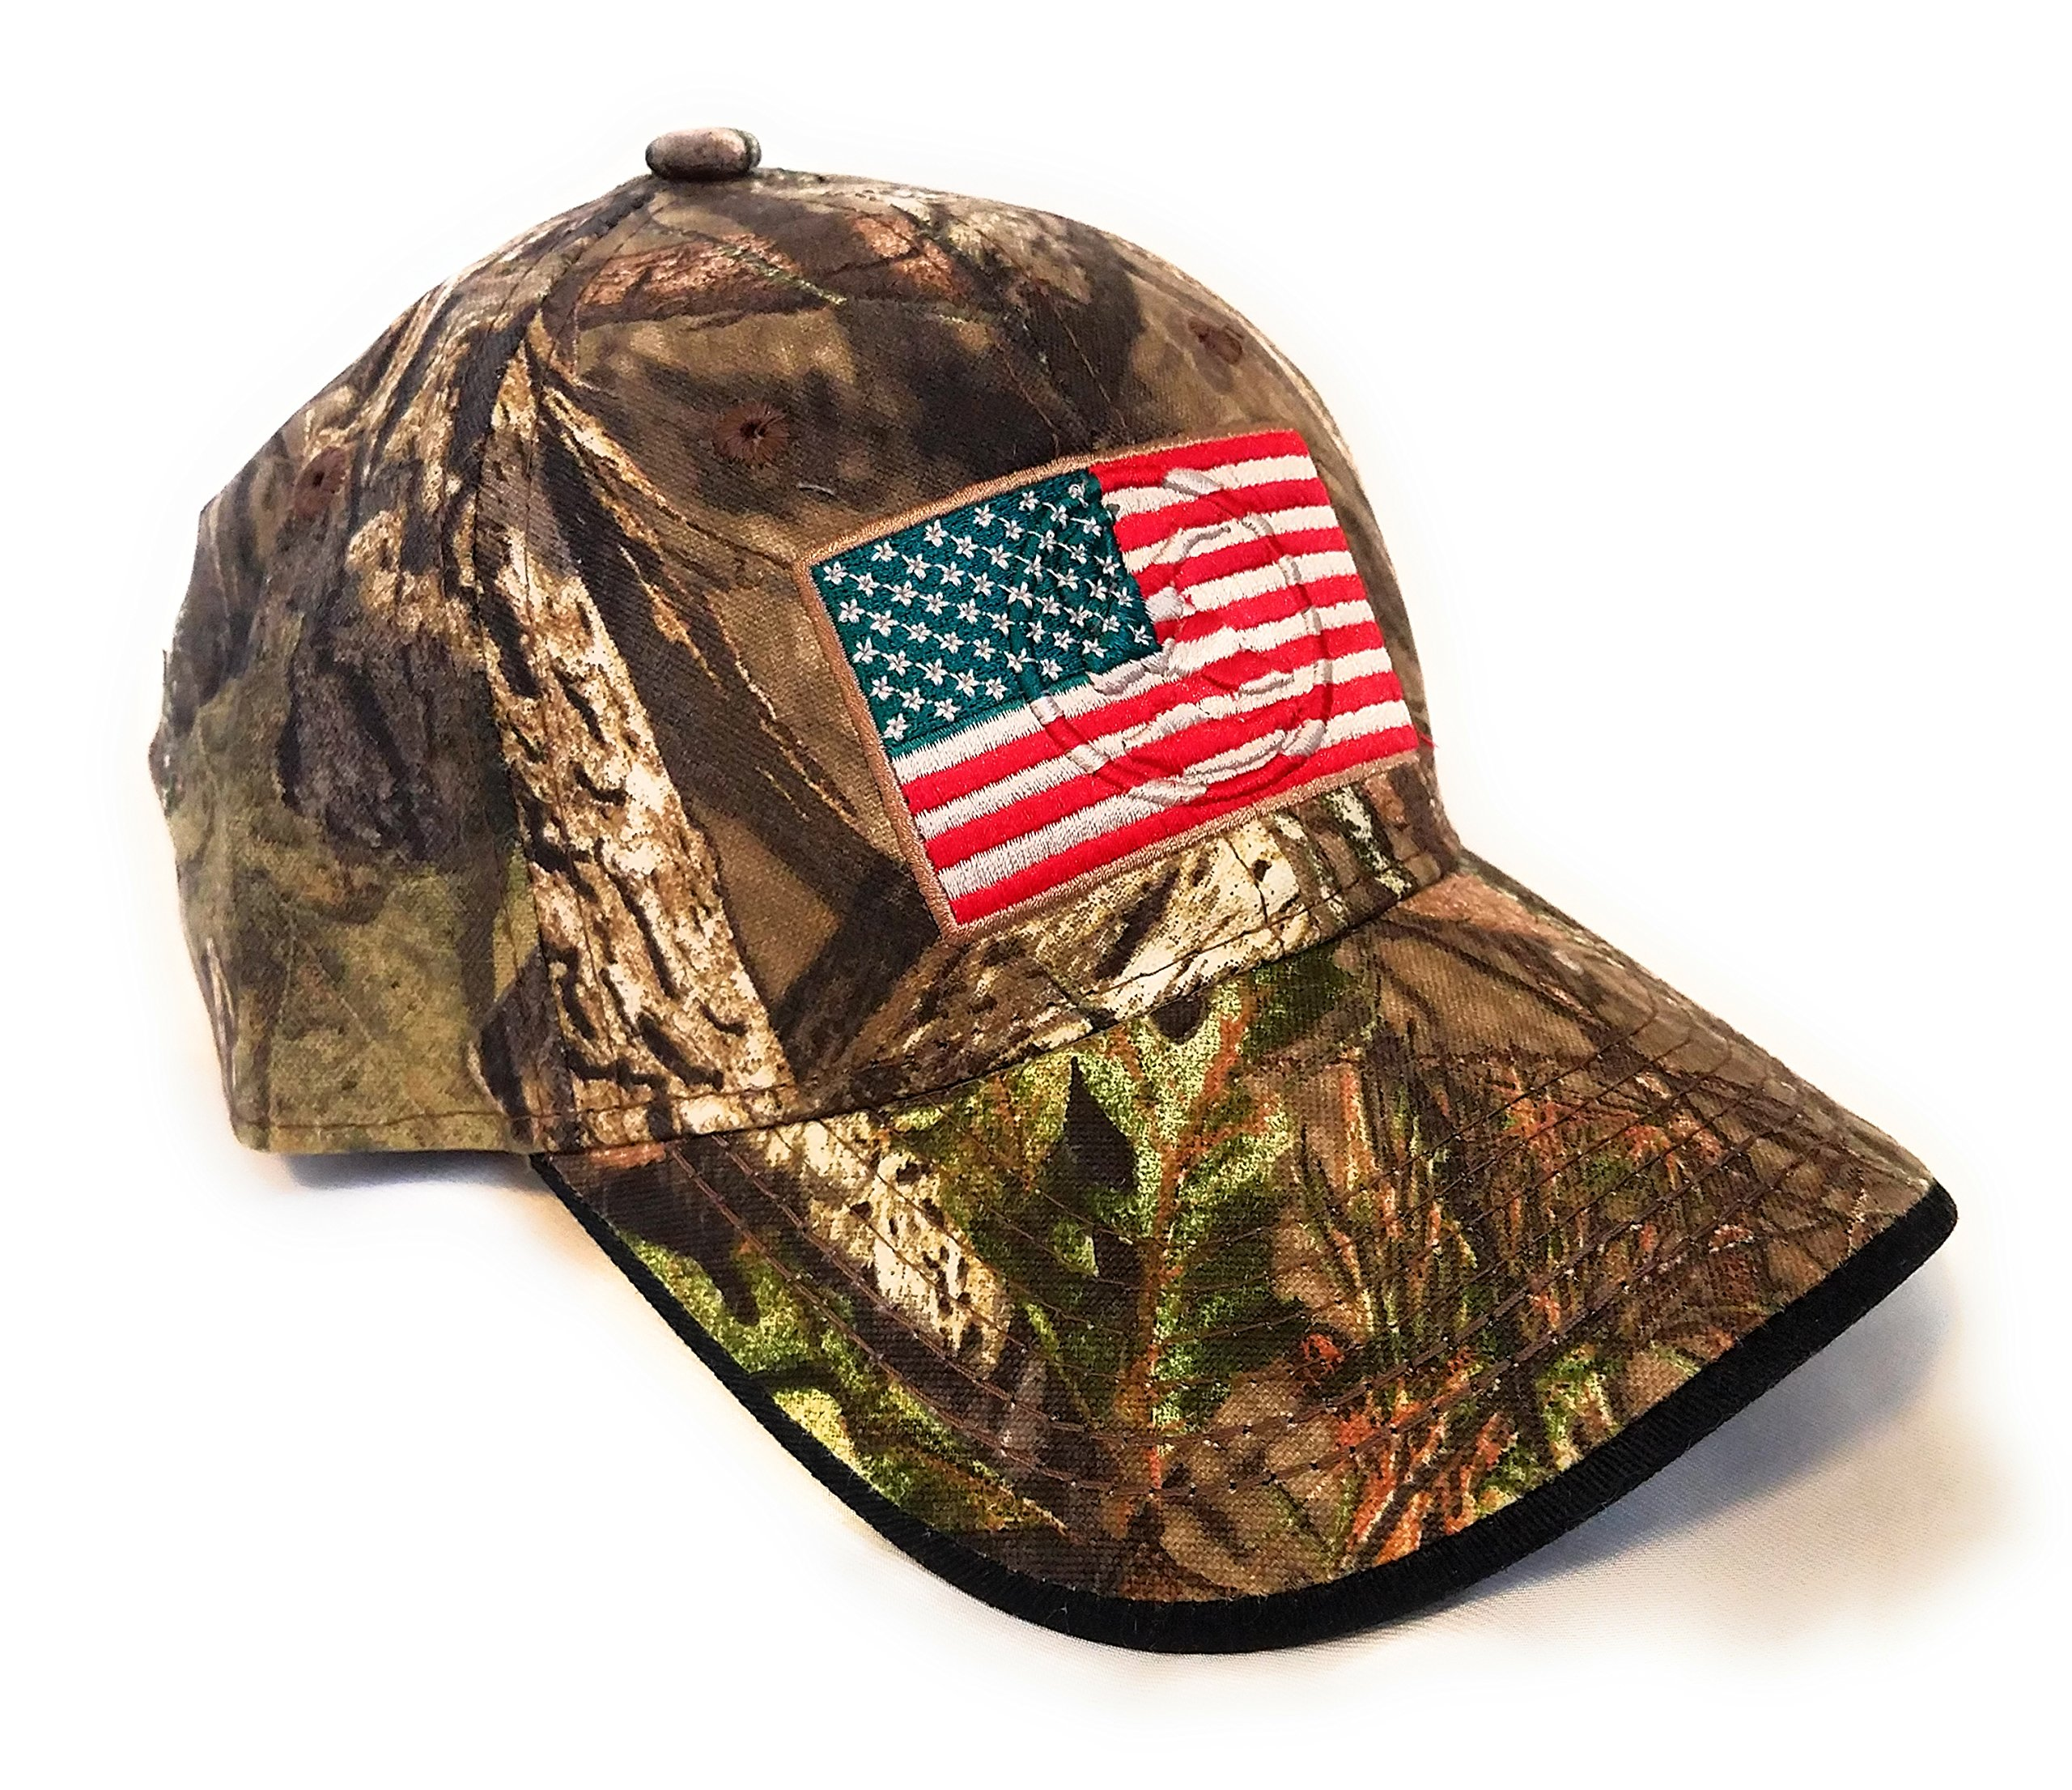 Mossy Oak Camping, Hunting, Outdoors American Flag Camo Cap, Army Military Camo Cap Baseball, Camouflage Hat